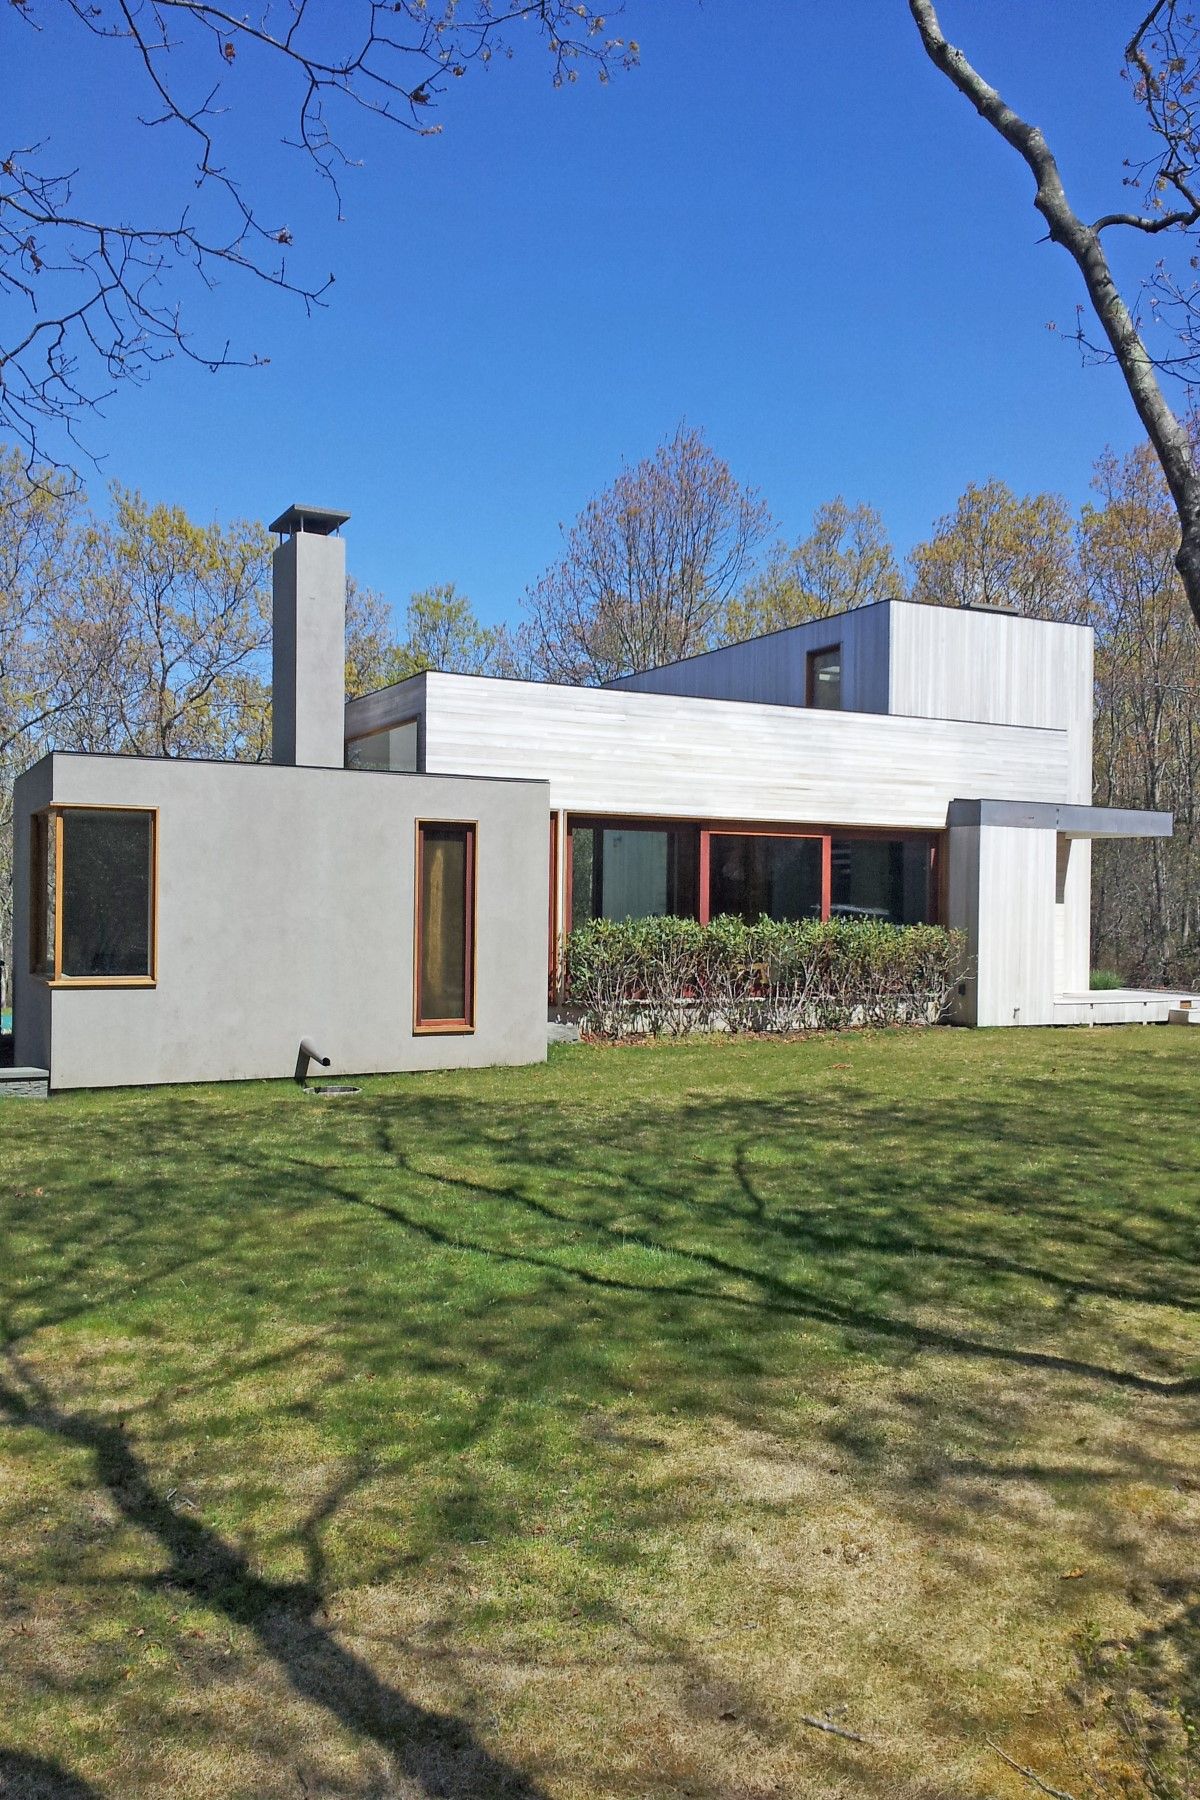 Single Family Home for Rent at Sleek Modern- Sagaponack North Sagaponack, New York 11962 United States